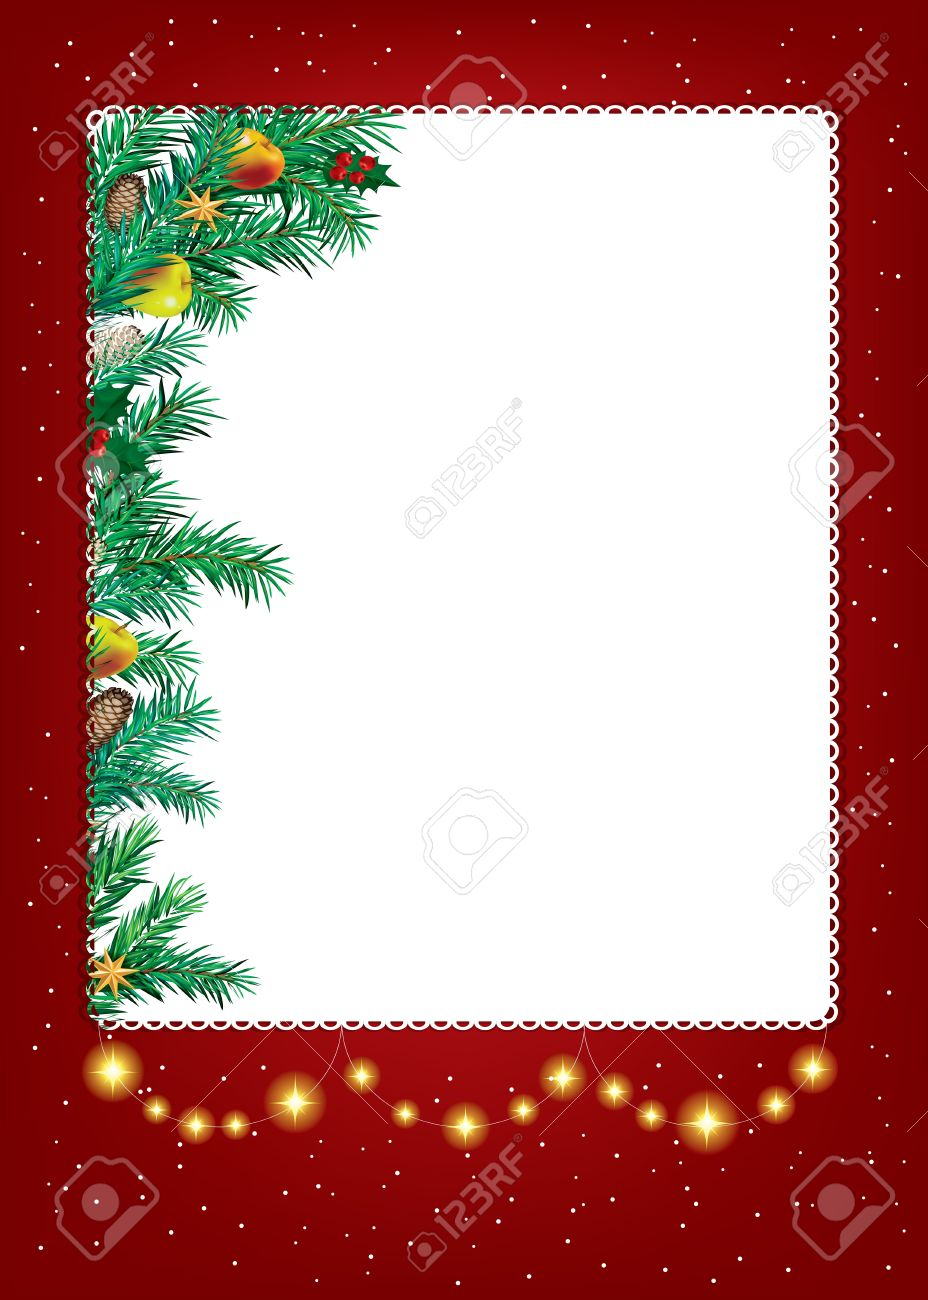 abstract beauty christmas and new year invitation background stock vector 15223353